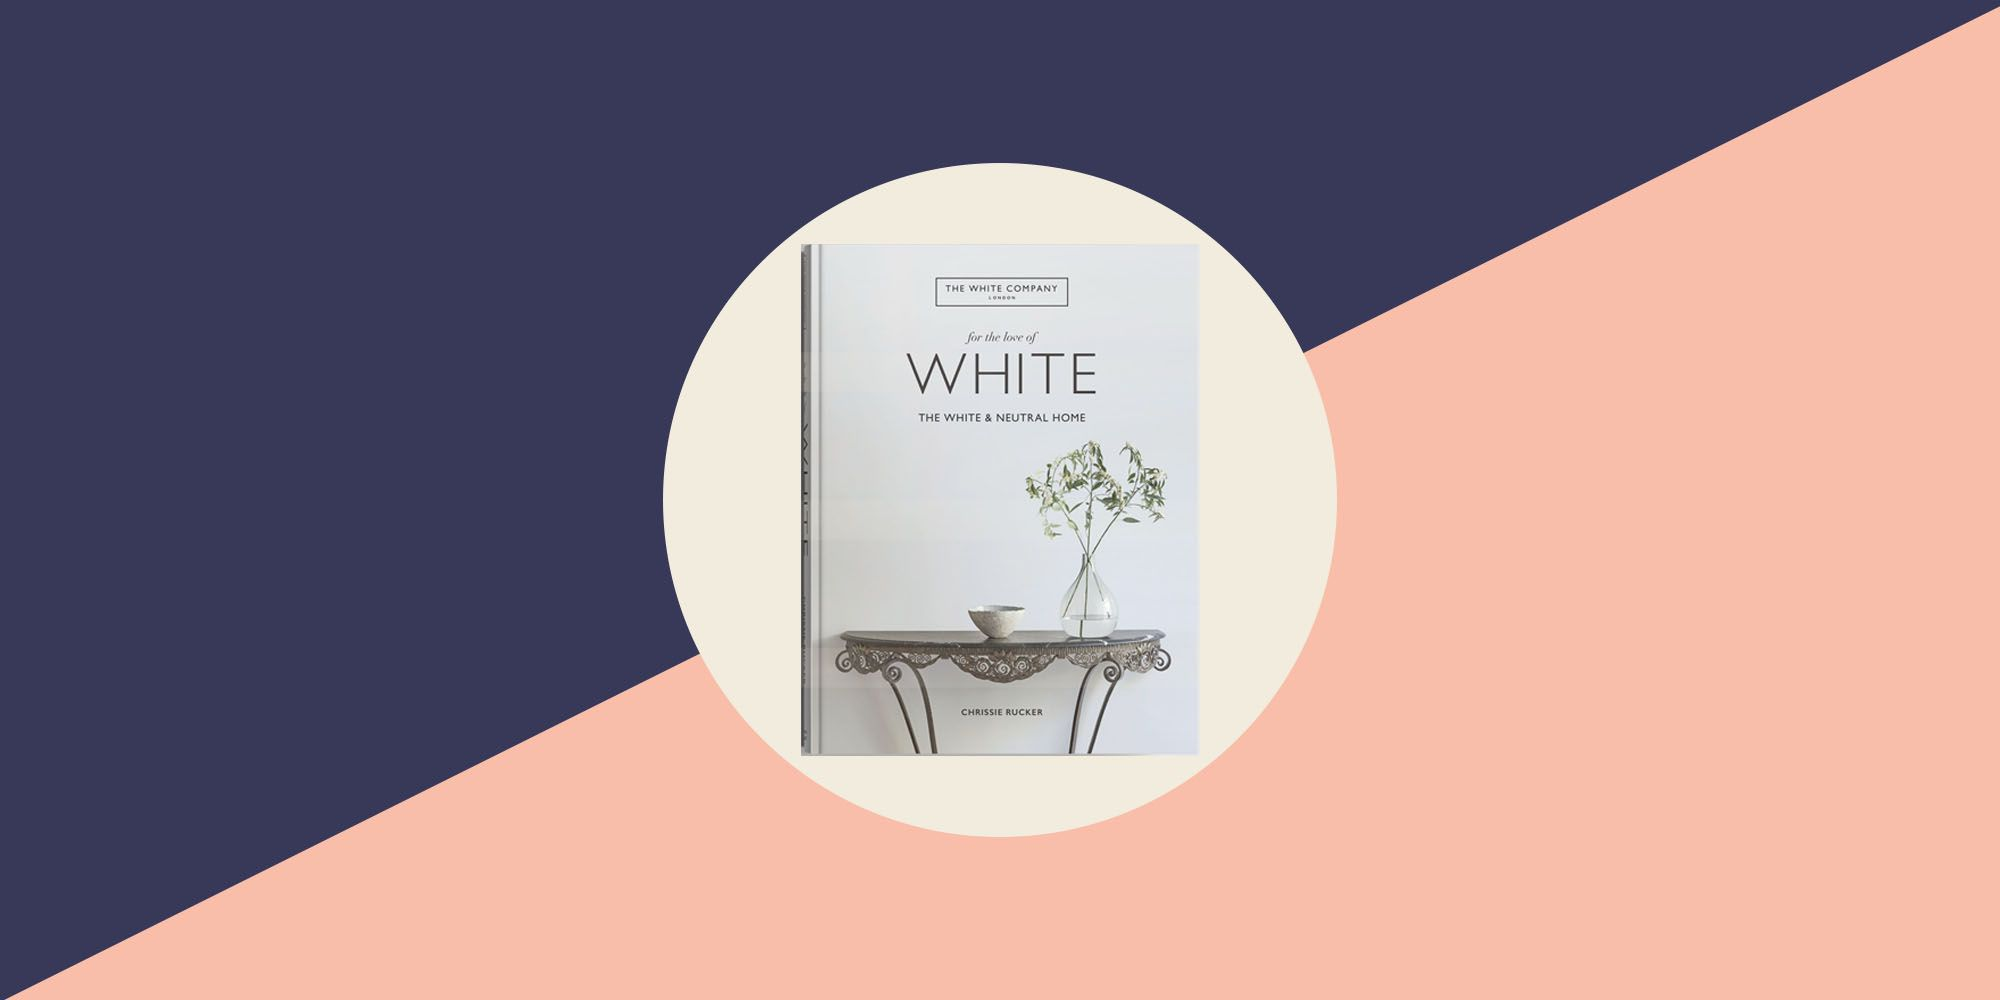 The White Company Releases First Home Decorating Book, For